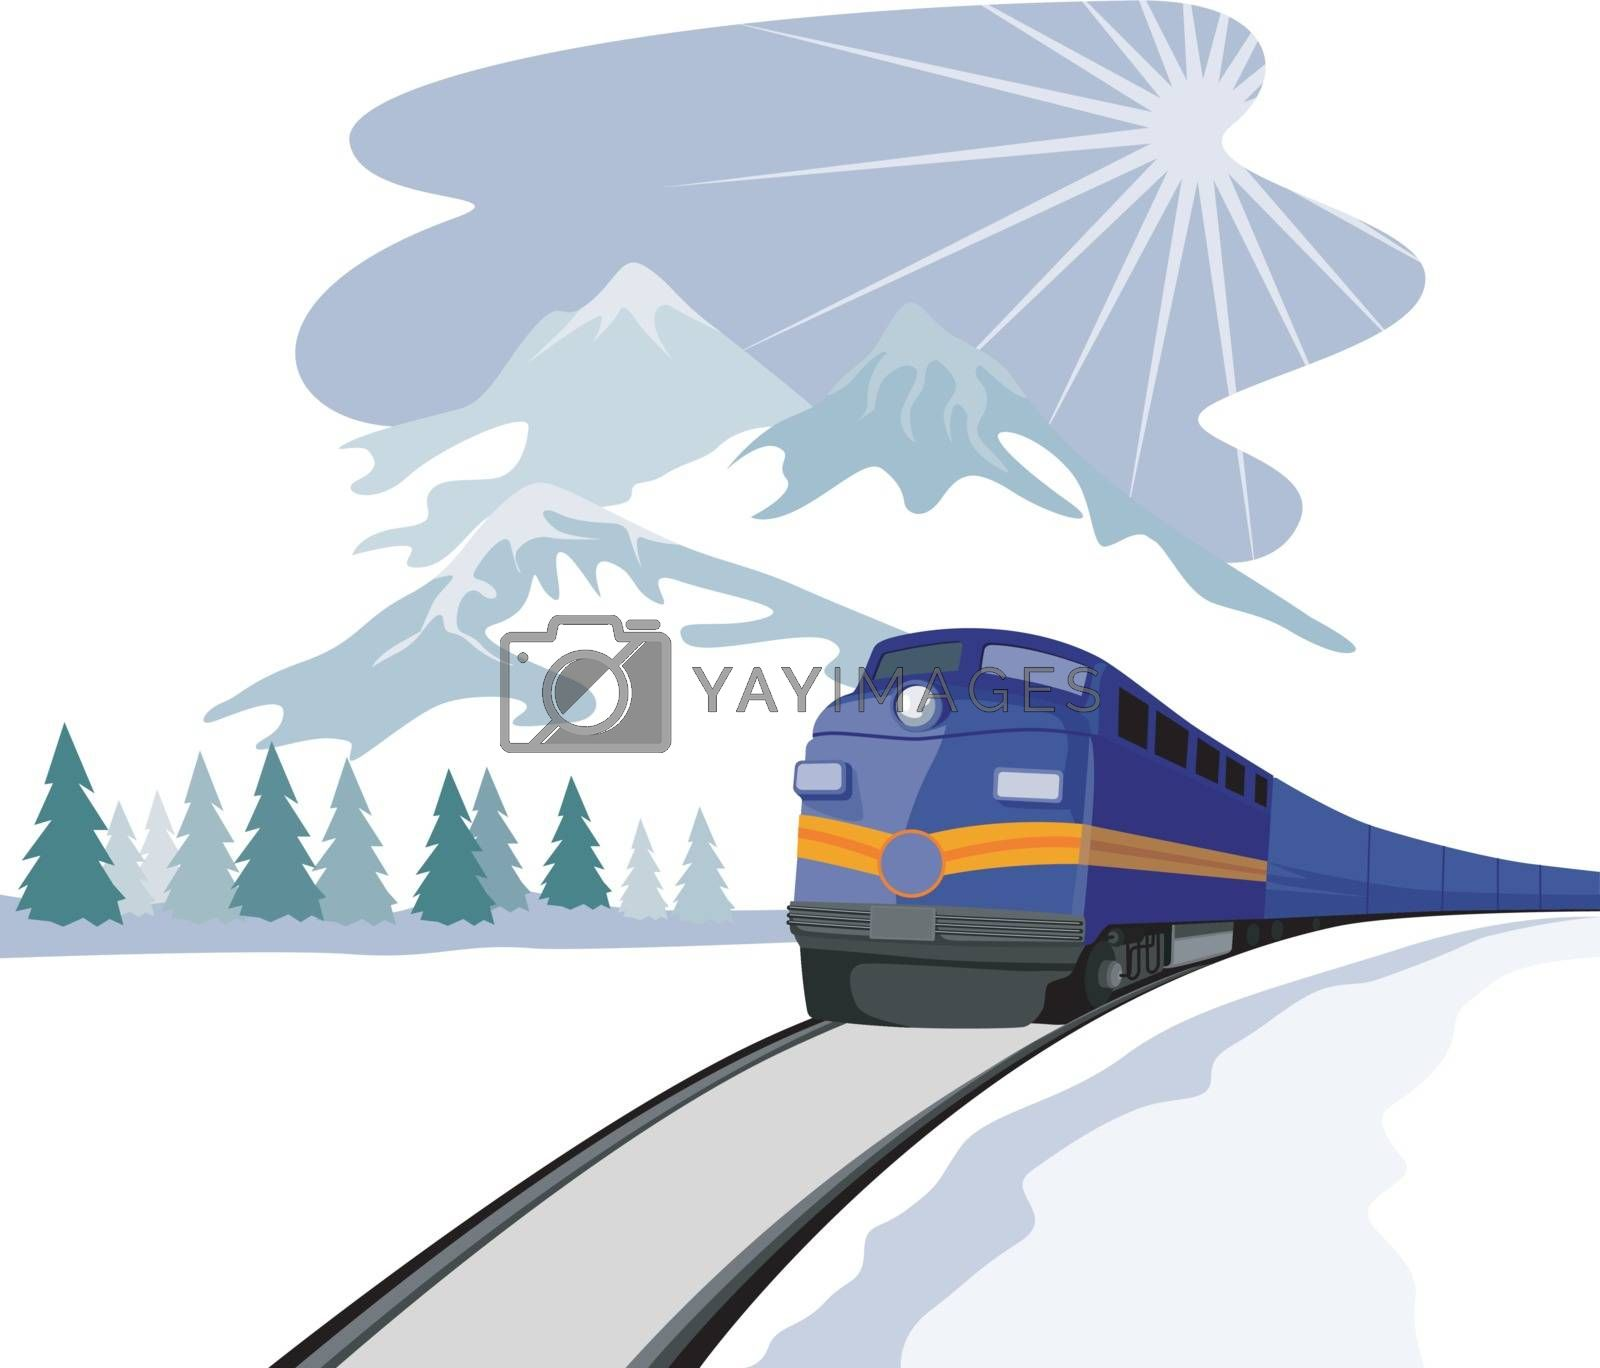 Illustration of a train heading front with sun and landscape in the background done in retro style.